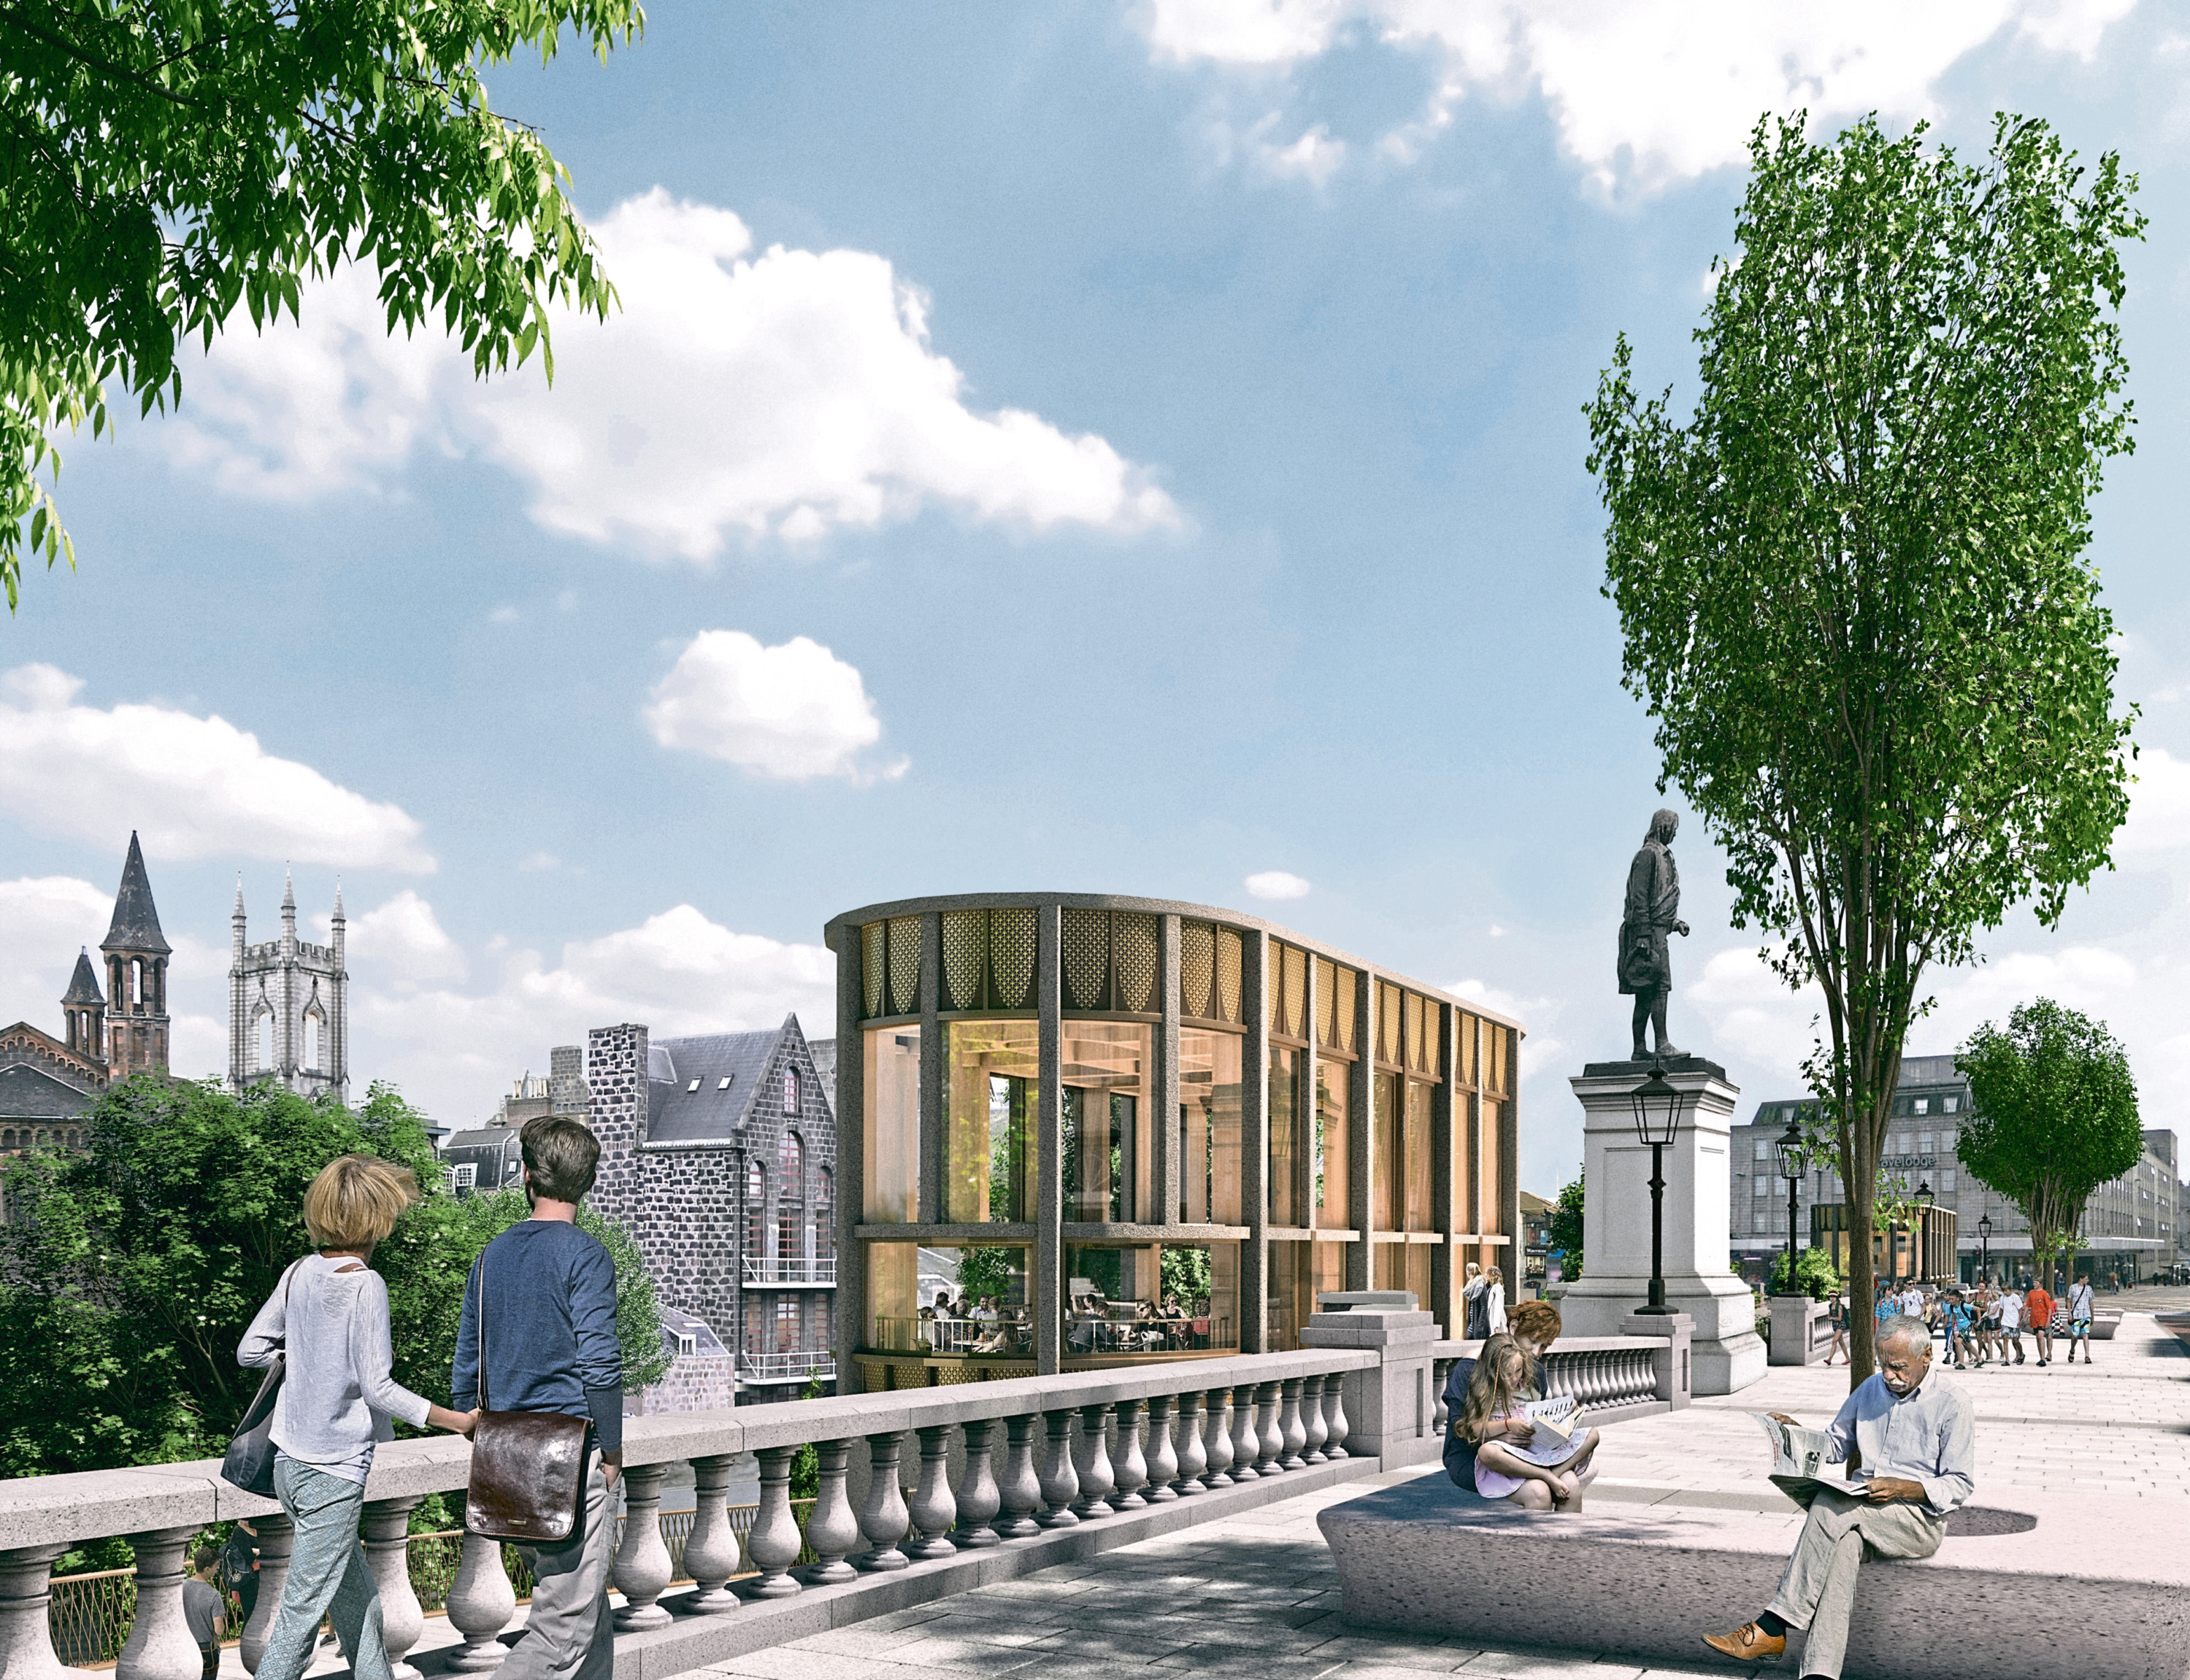 An artist's impression of how Union Terrace Gardens could look